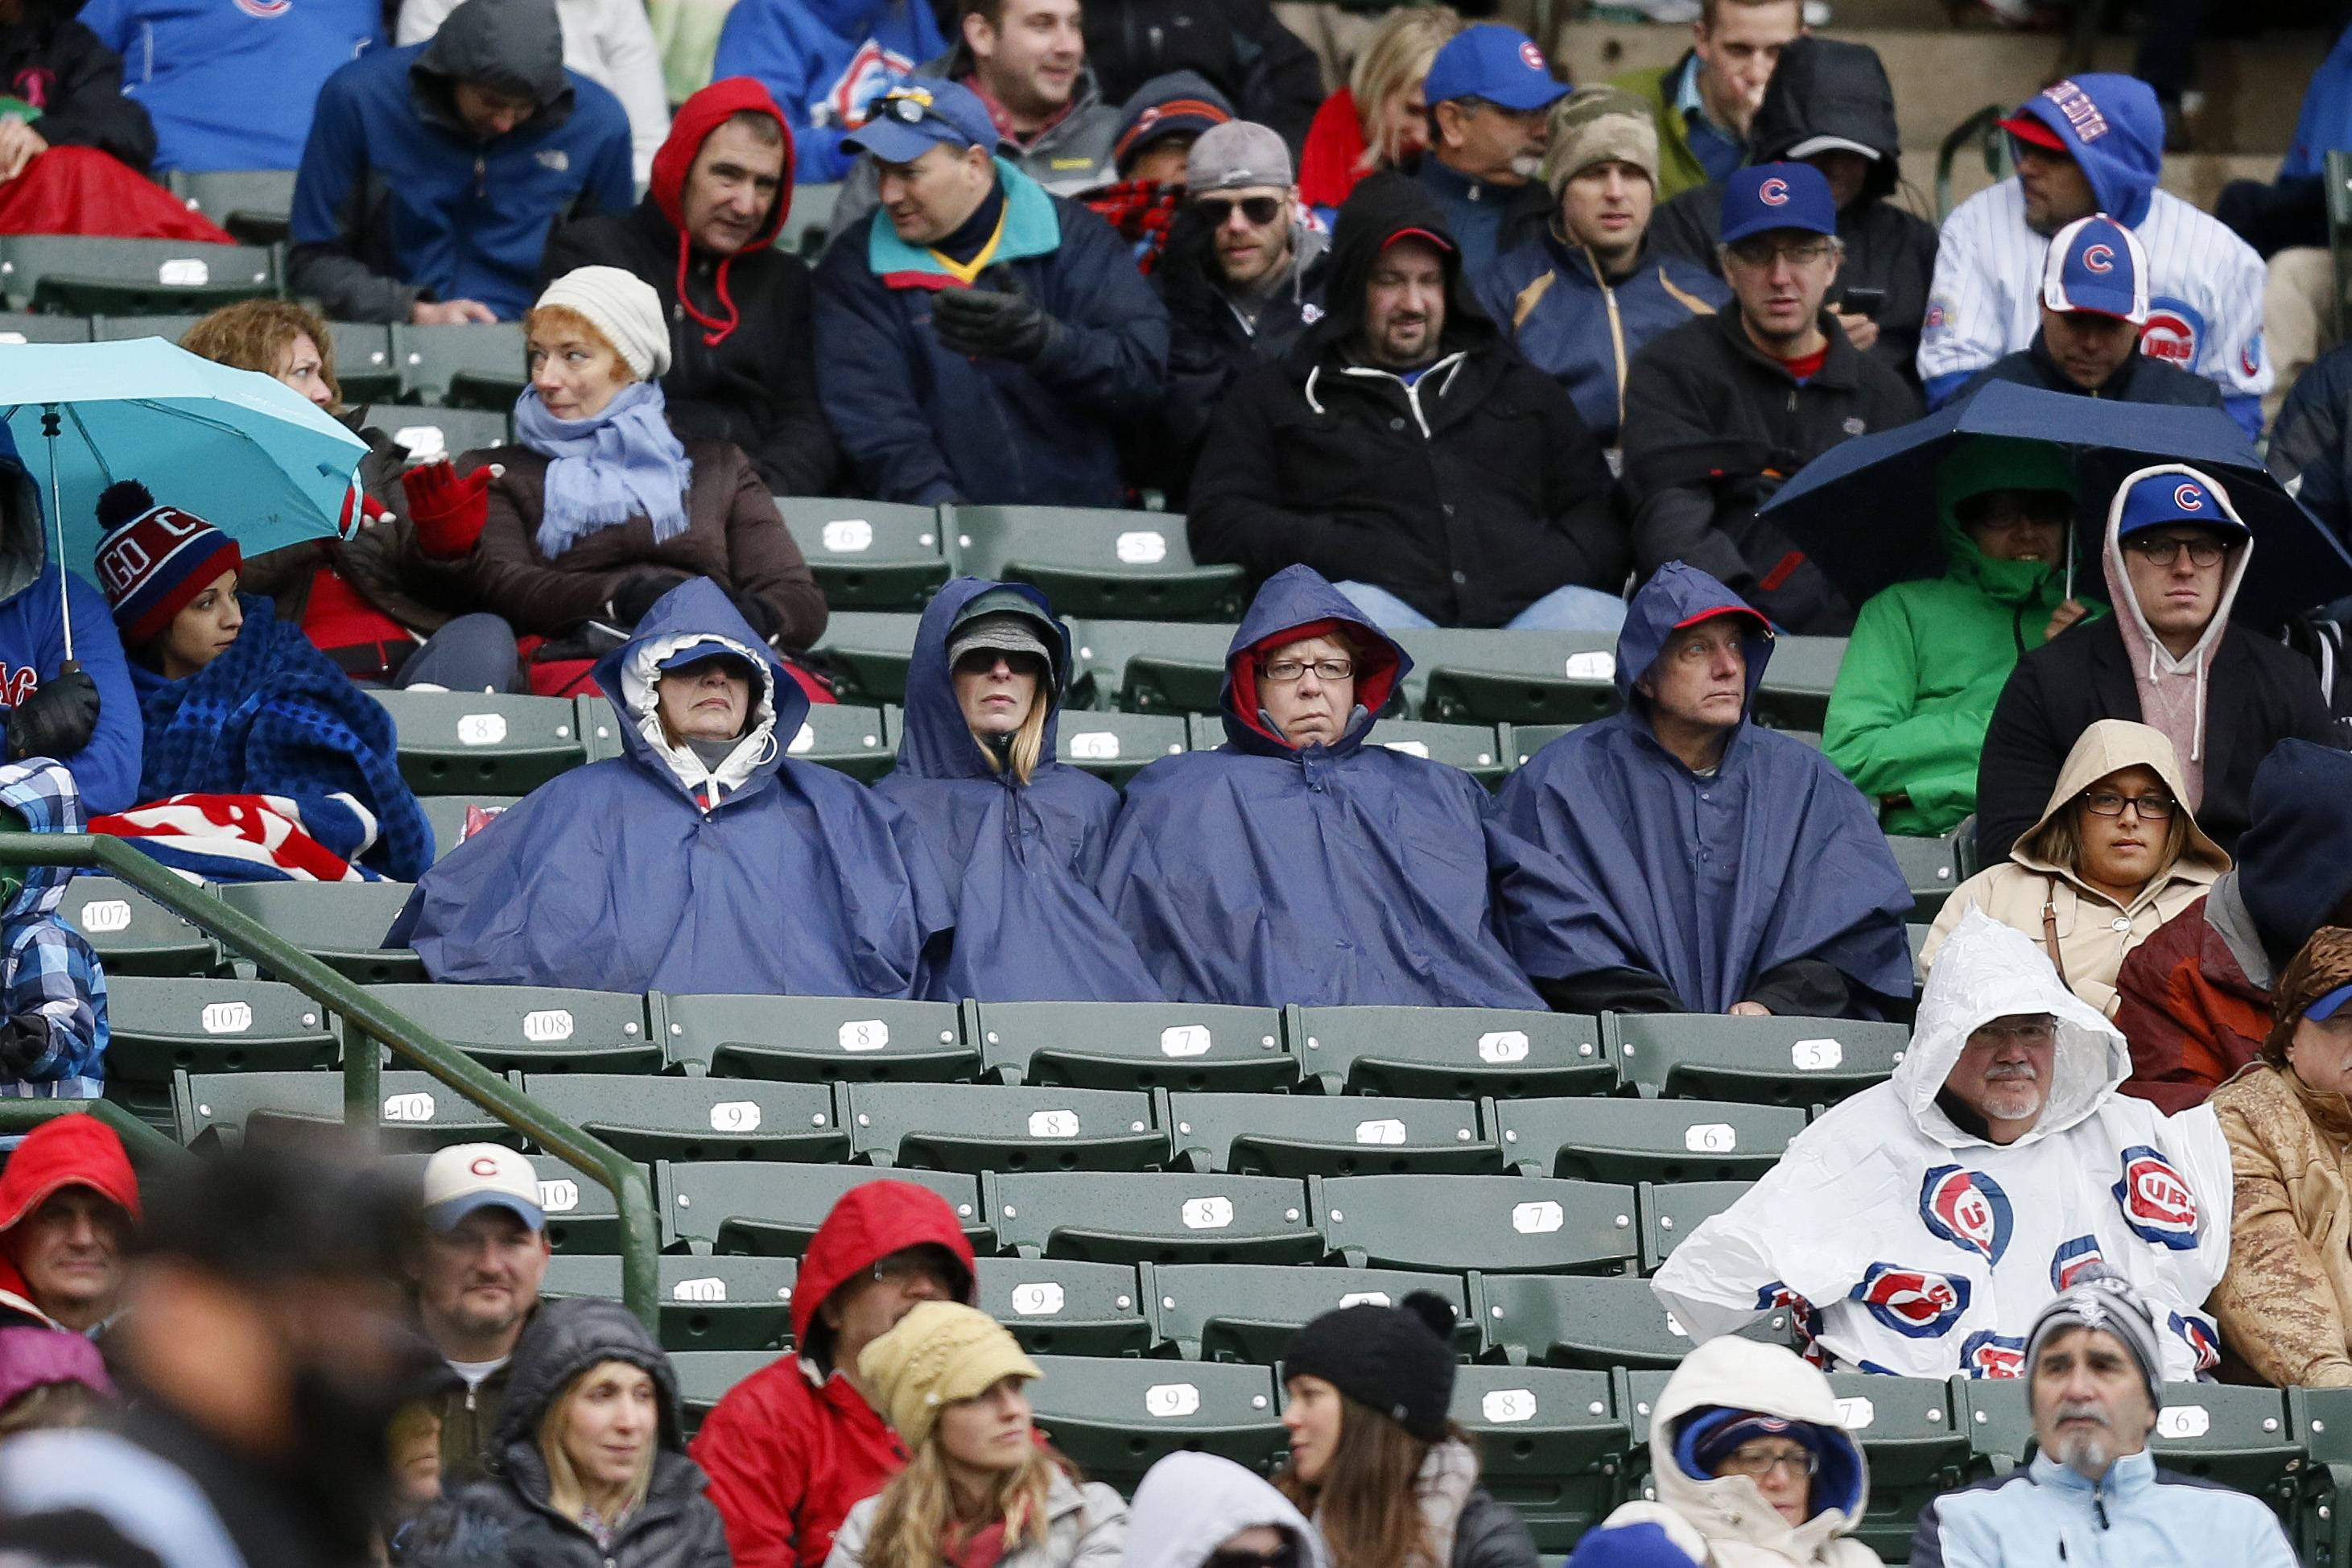 Fans watch the game between the Brewers and Cubs as a cold rain falls Friday at Wrigley Field.